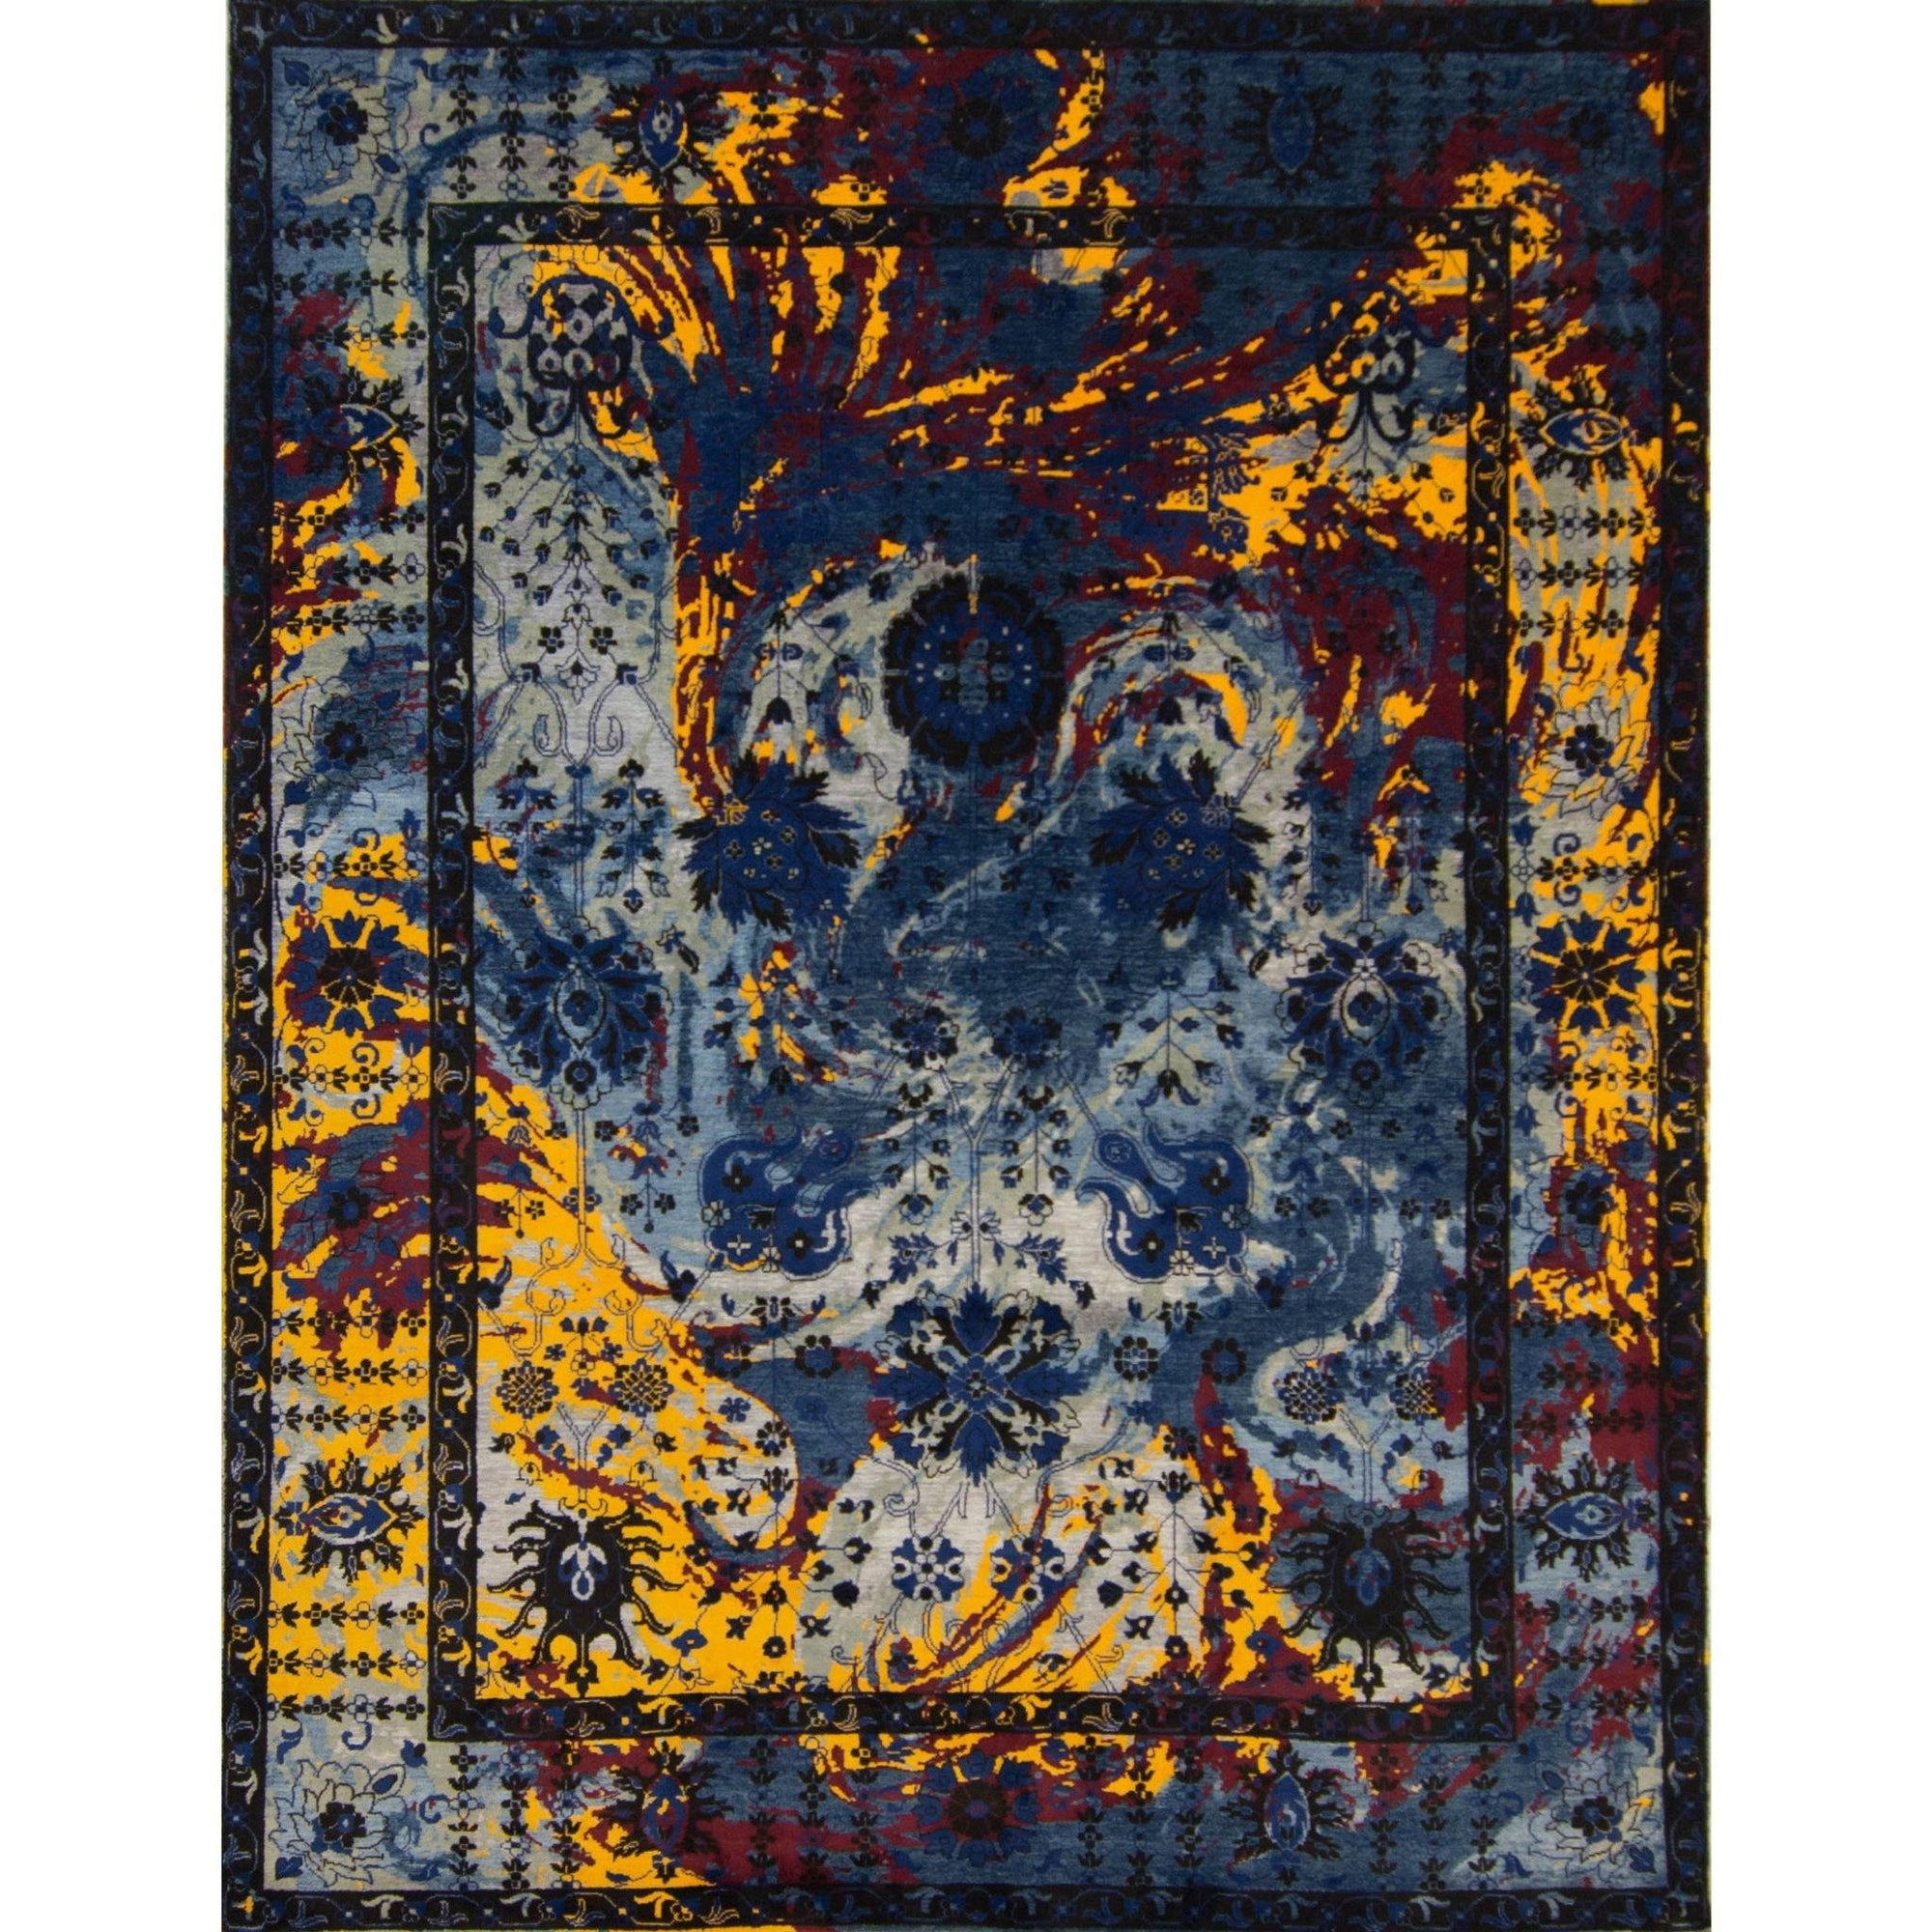 Modern Hand-knotted Wool and Silk Galaxy Rug 248cm x 310cm Persian-Rug | House-of-Haghi | NewMarket | Auckland | NZ | Handmade Persian Rugs | Hand Knotted Persian Rugs